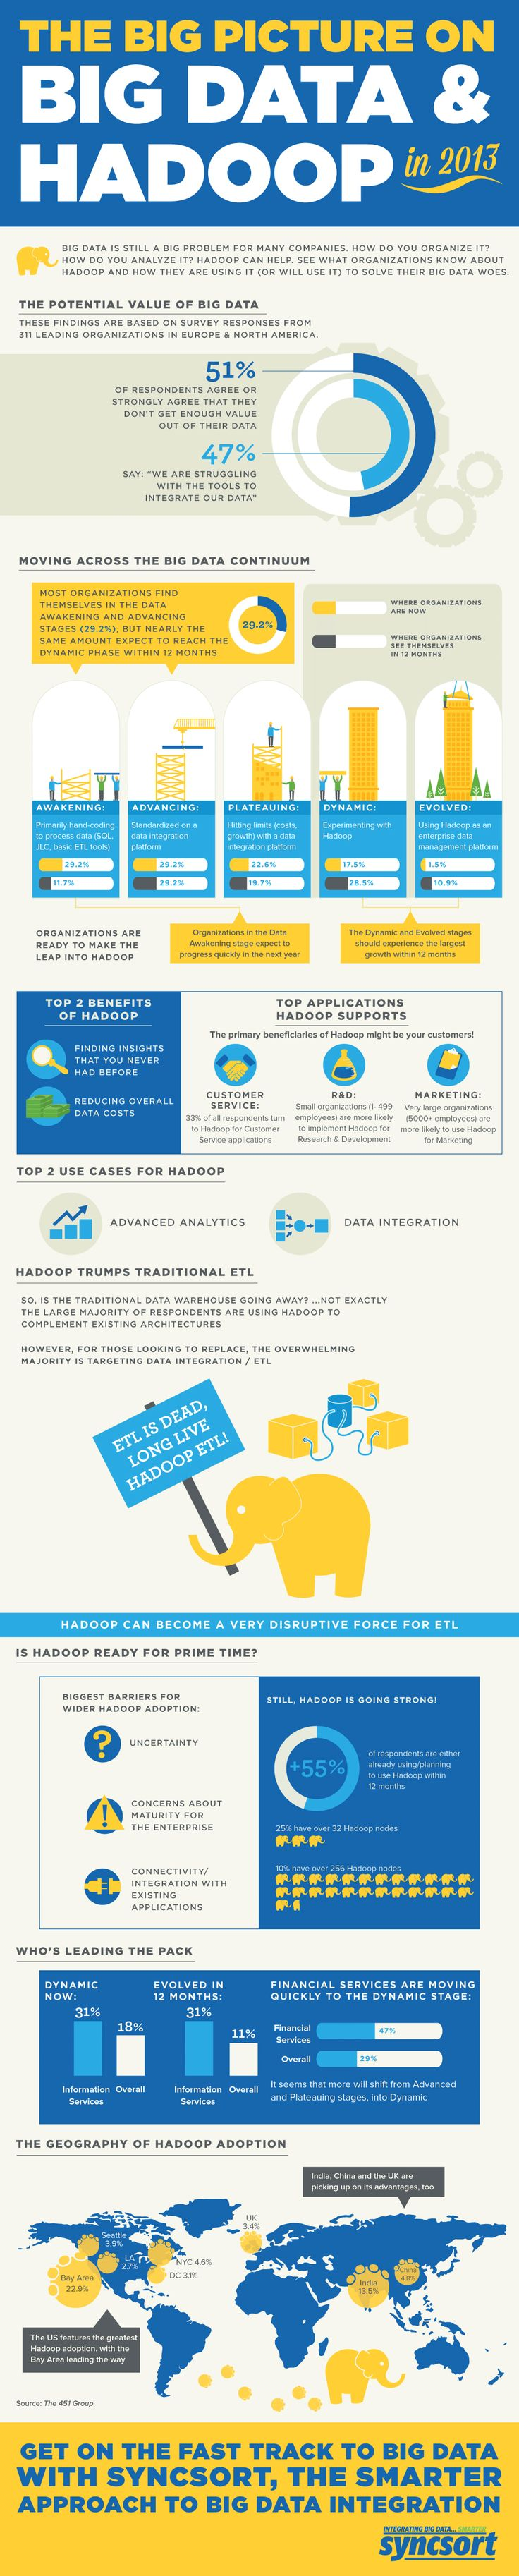 Infographic: The Big Picture on Big Data & Hadoop in 2013